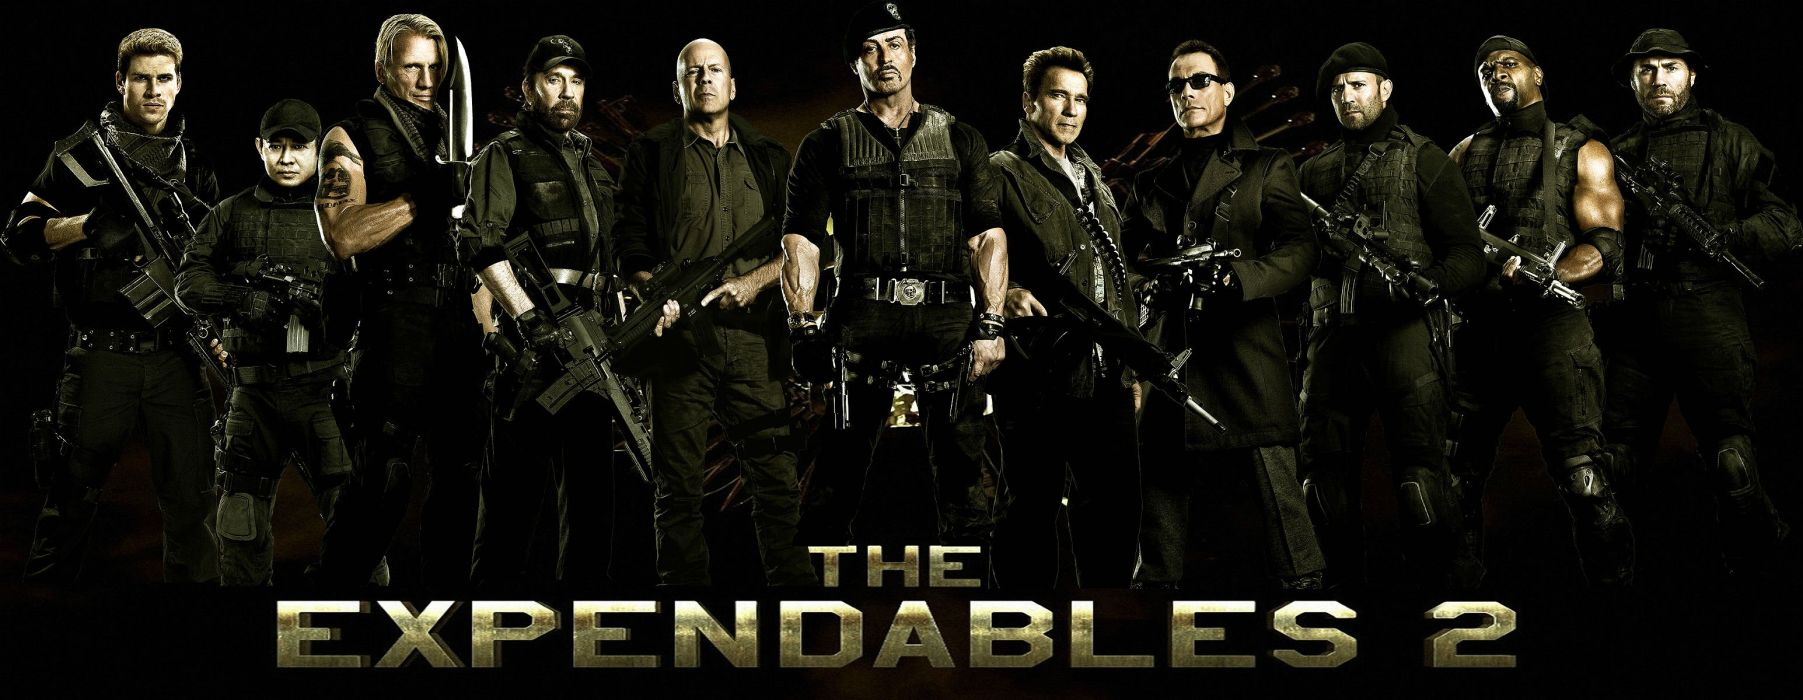 EXPENDABLES 2 action adventure thriller (16) wallpaper